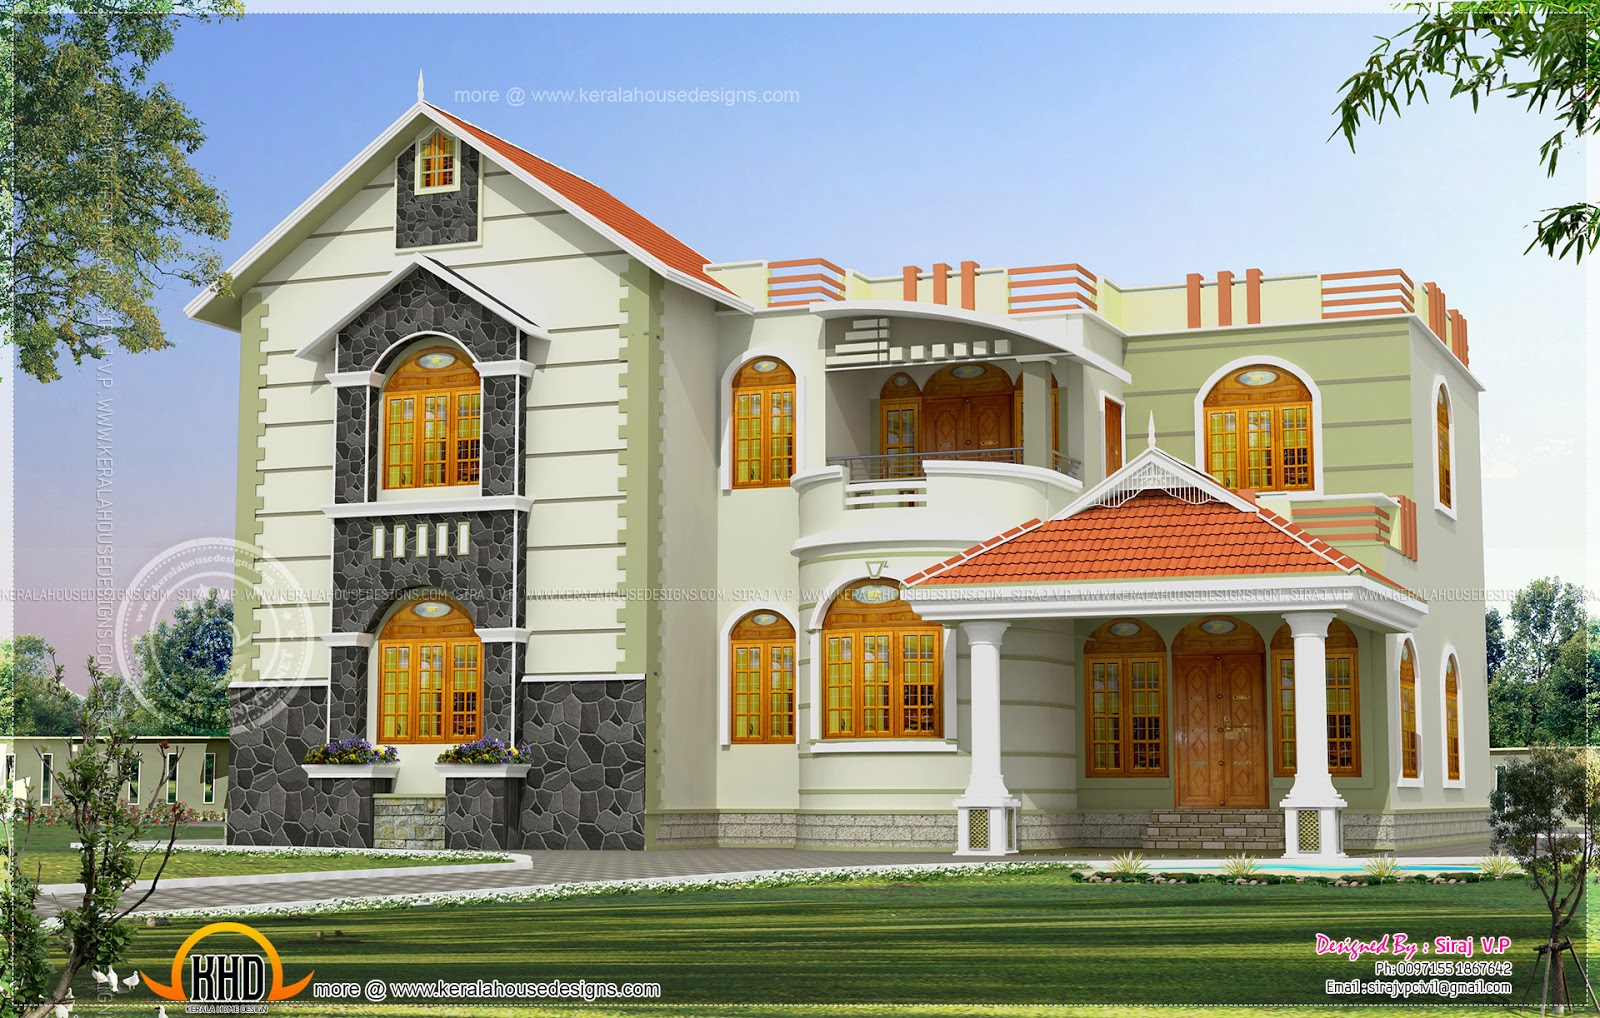 house exterior design in two color combinations kerala home design